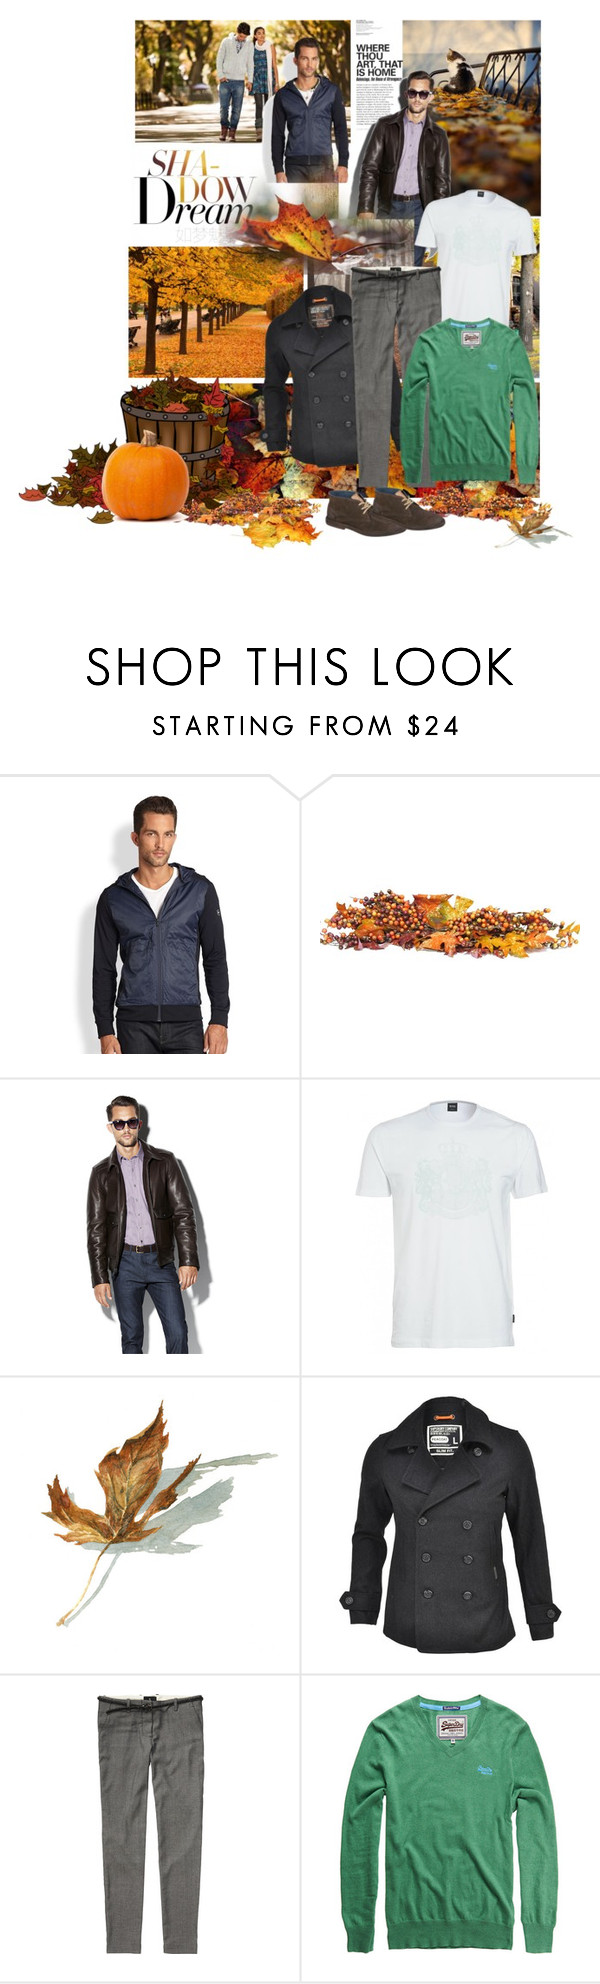 """Dress My Man"" by youaresofashion ❤ liked on Polyvore featuring Forum, H&M, Victorinox Swiss Army, GE, Vince Camuto, BOSS Black, Scotch & Soda, Superdry and Calvin Klein Jeans"